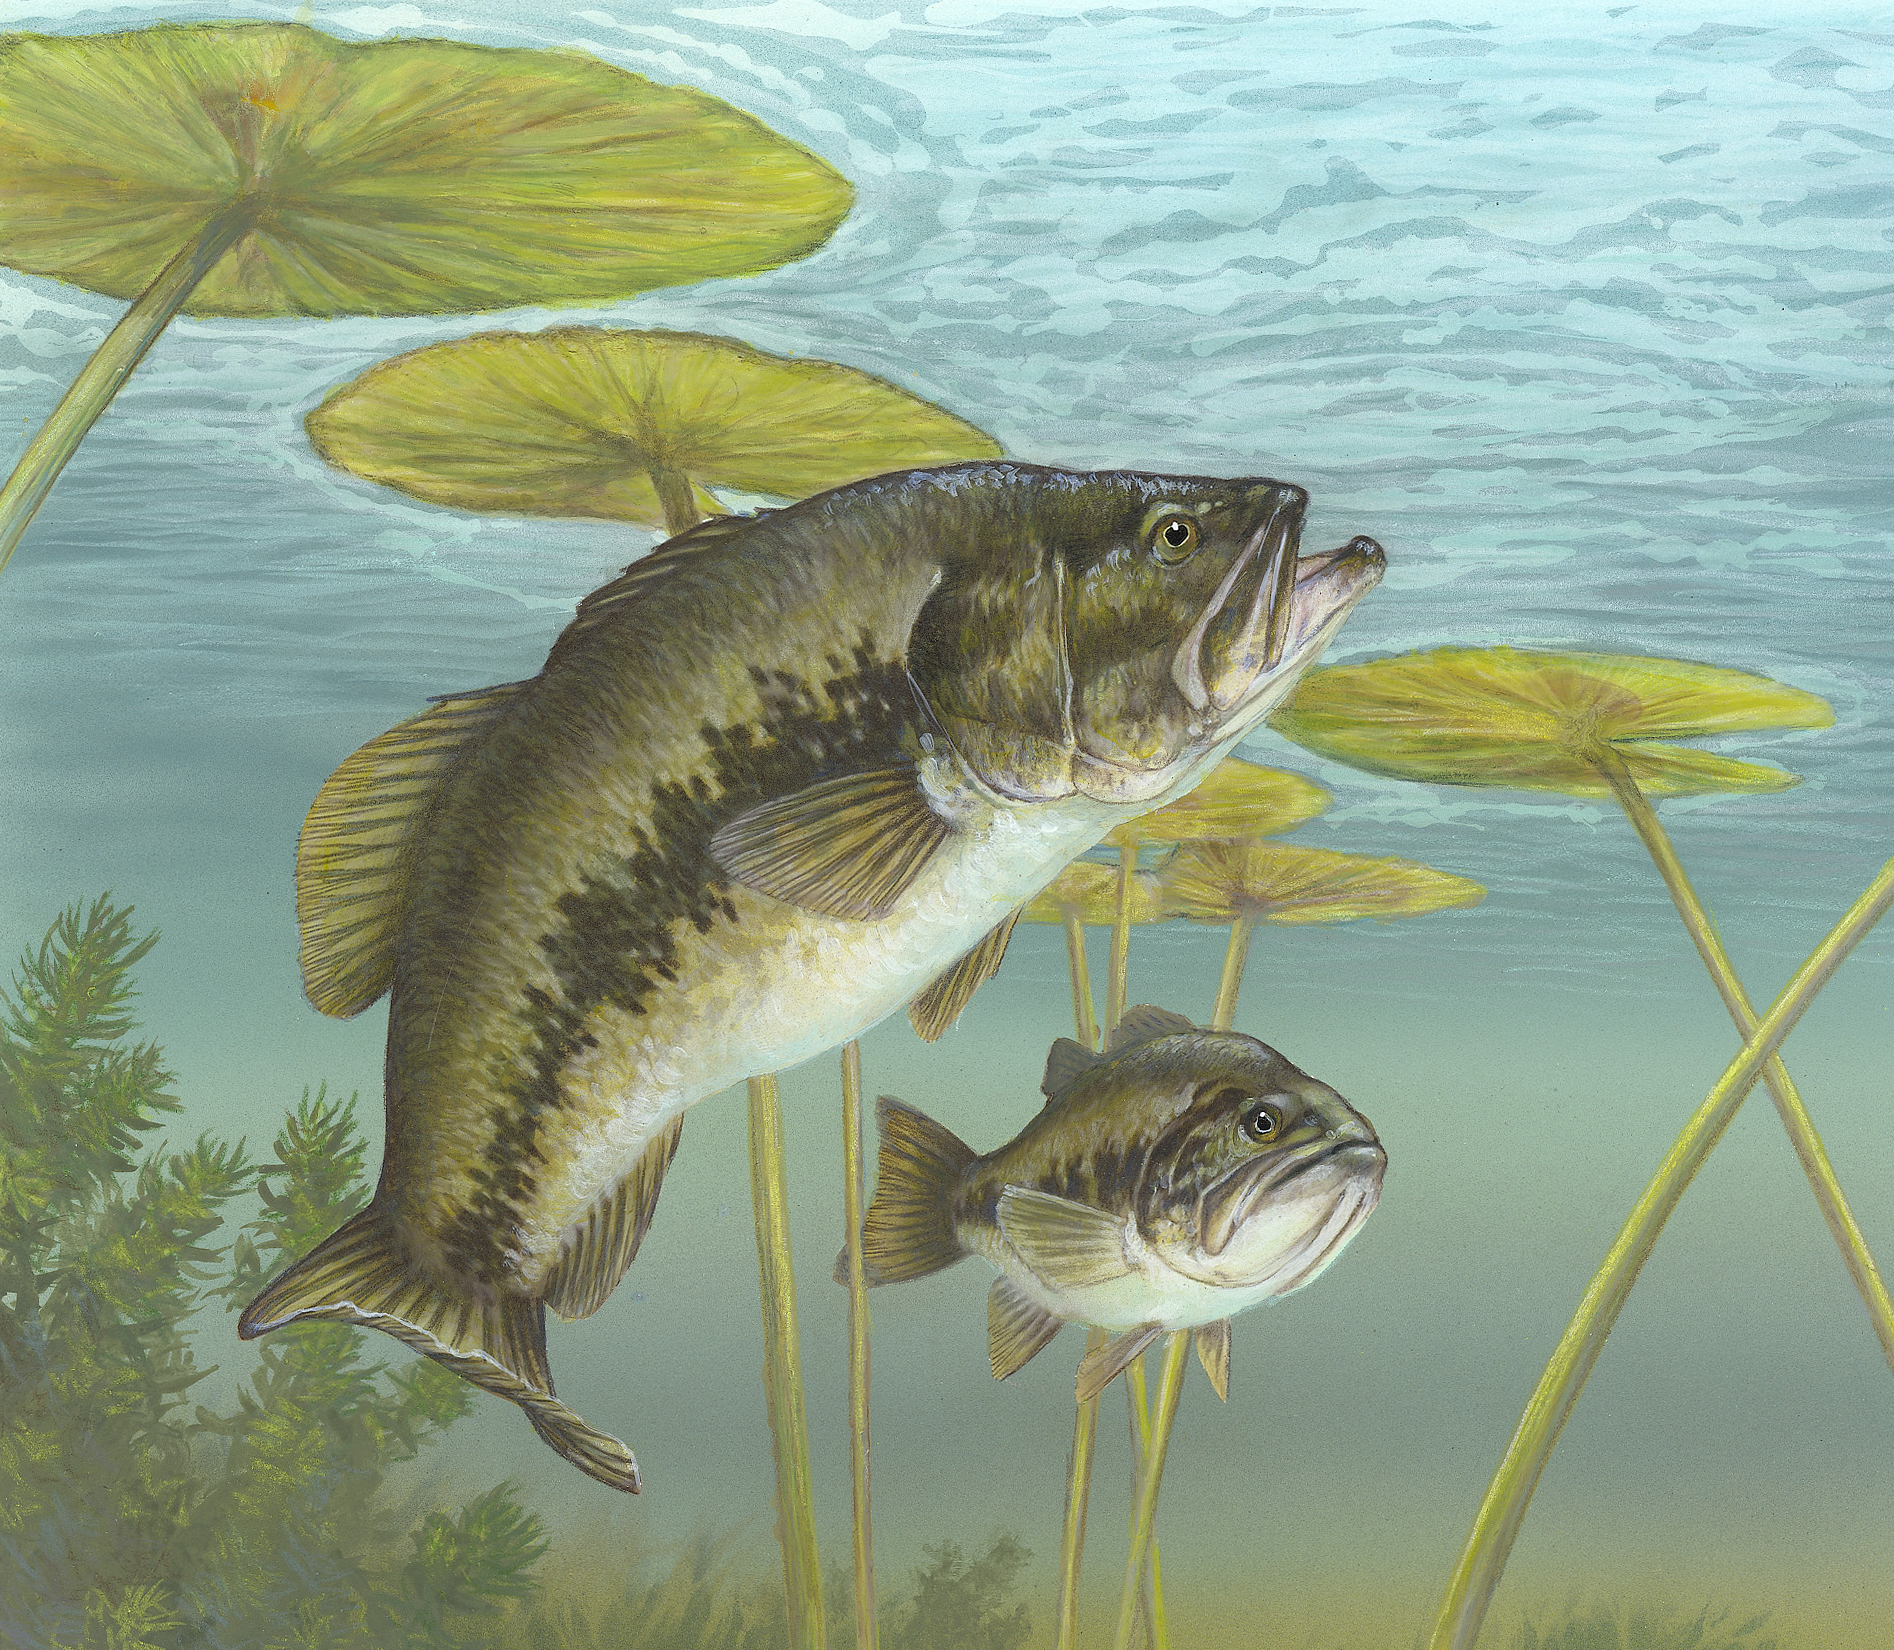 Largemouth Bass Wallpaper For Desktop Images amp Pictures 1894x1650